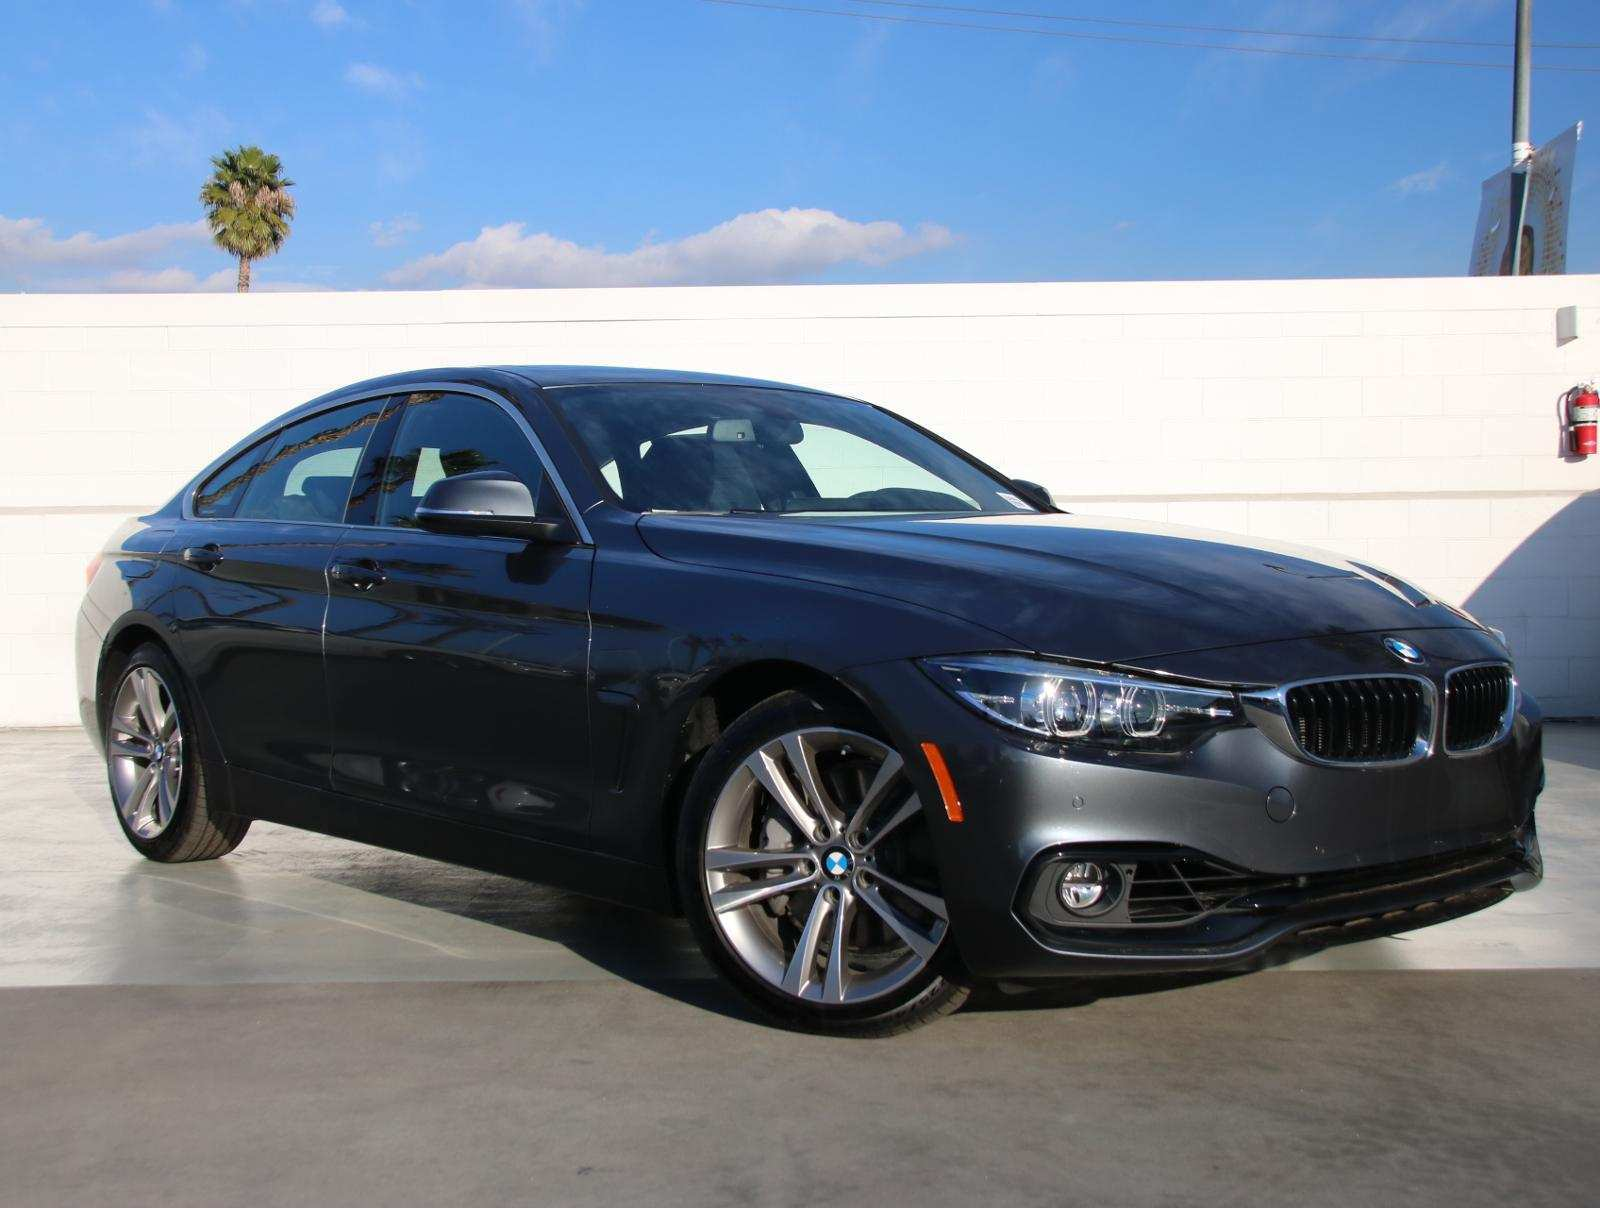 89 The 2019 4 Series Bmw Price And Review